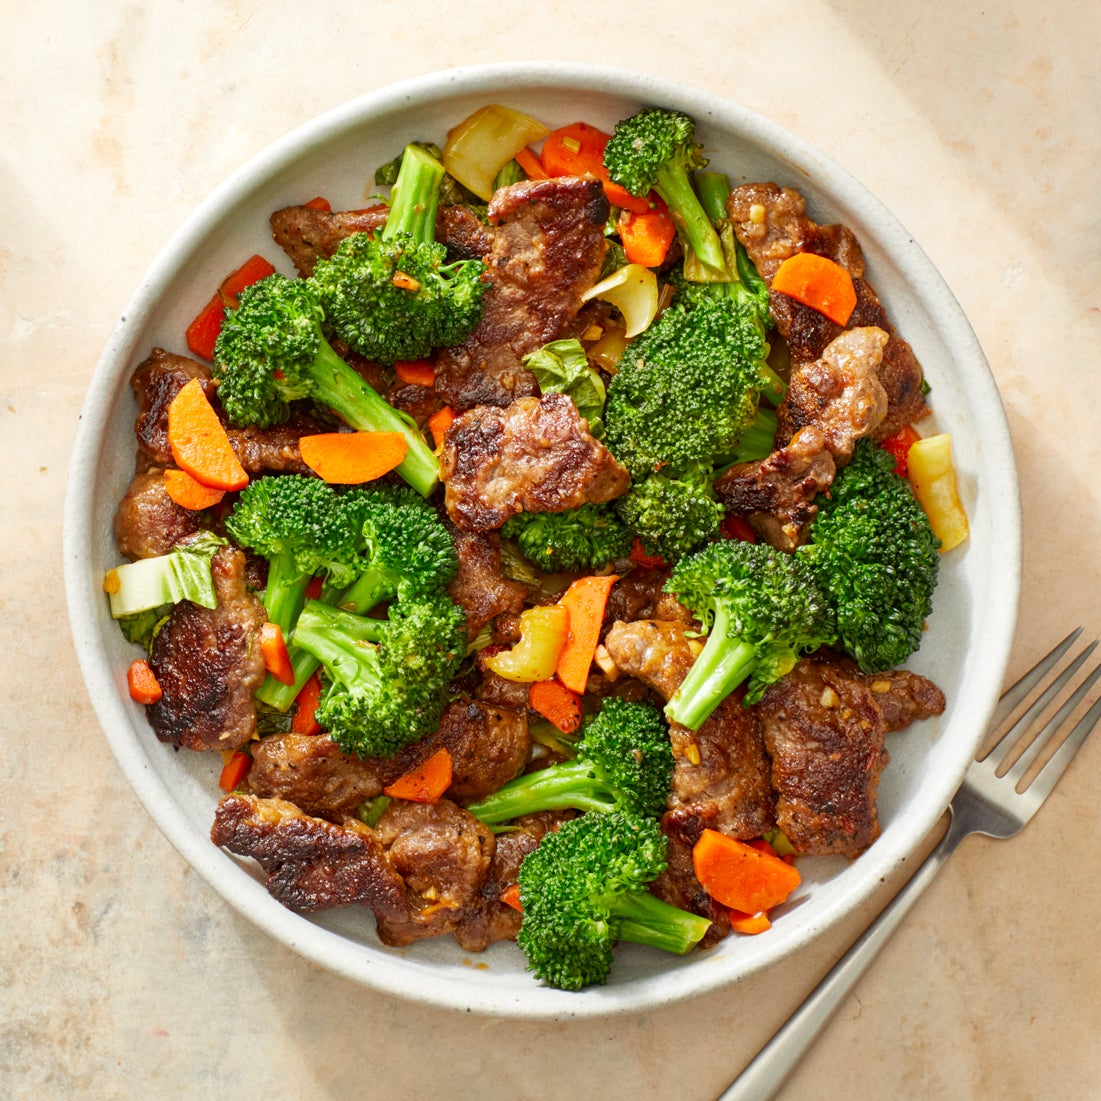 Beef & Vegetable Stir-Fry with Sesame-Sambal Sauce